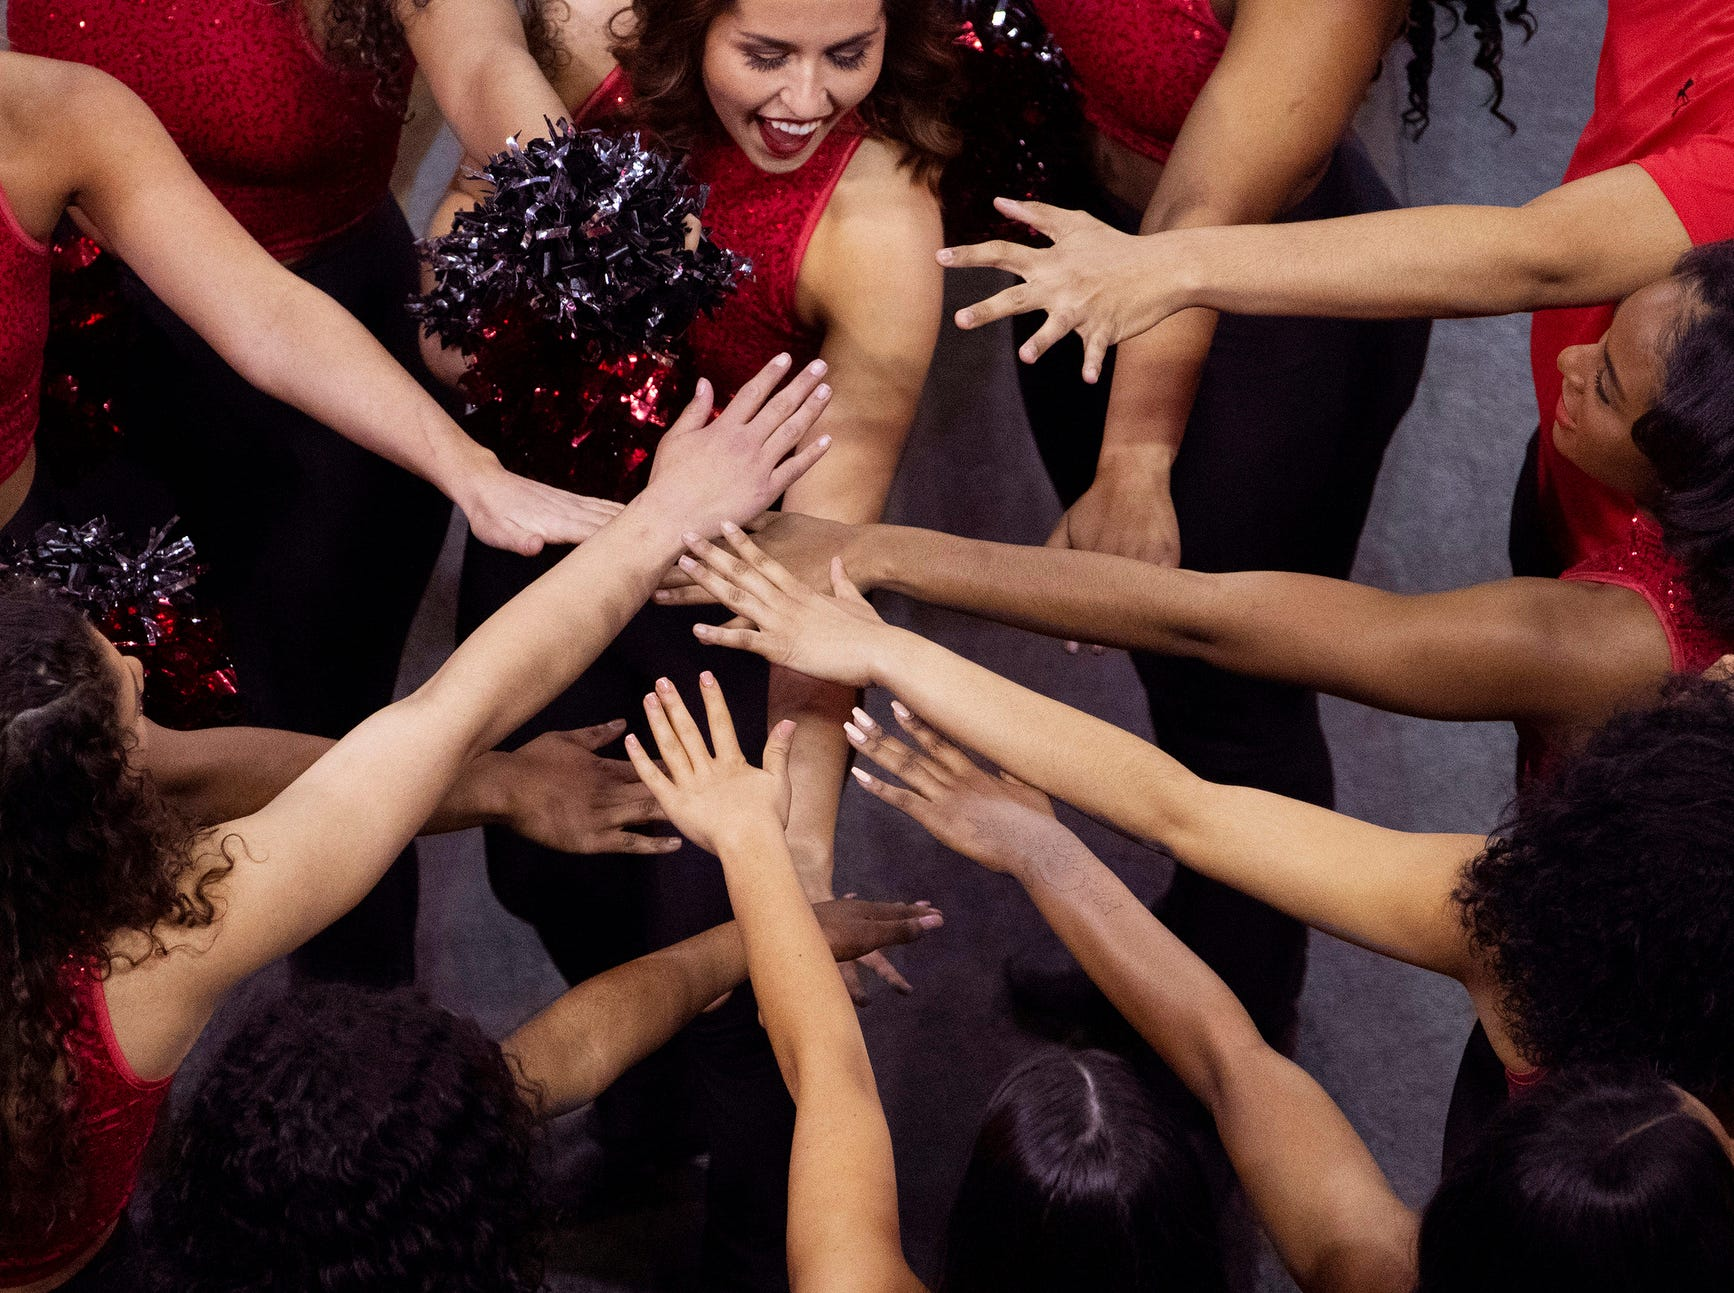 The Austin Peay Dance Team puts their hands in before taking the floor for their halftime routine during the quarterfinal game of the Ohio Valley Conference Women's Basketball Championship at the Ford Center Thursday afternoon, March 7, 2019. Tennessee Tech came out on top and advanced to Friday's semifinal game.